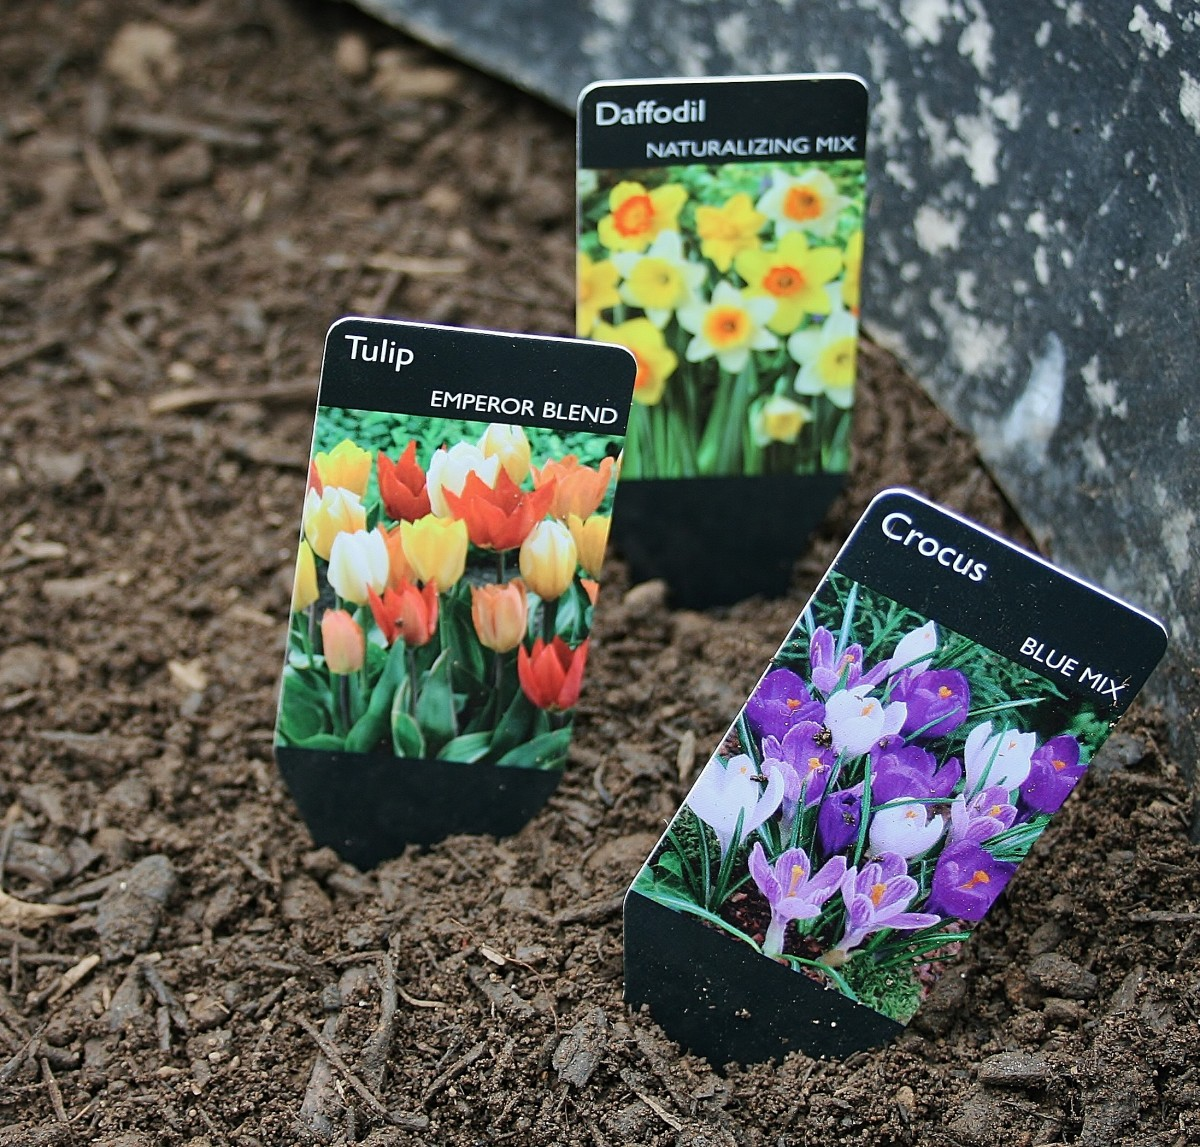 This year I chose crocus, tulips, and daffodils for our container bulb garden.